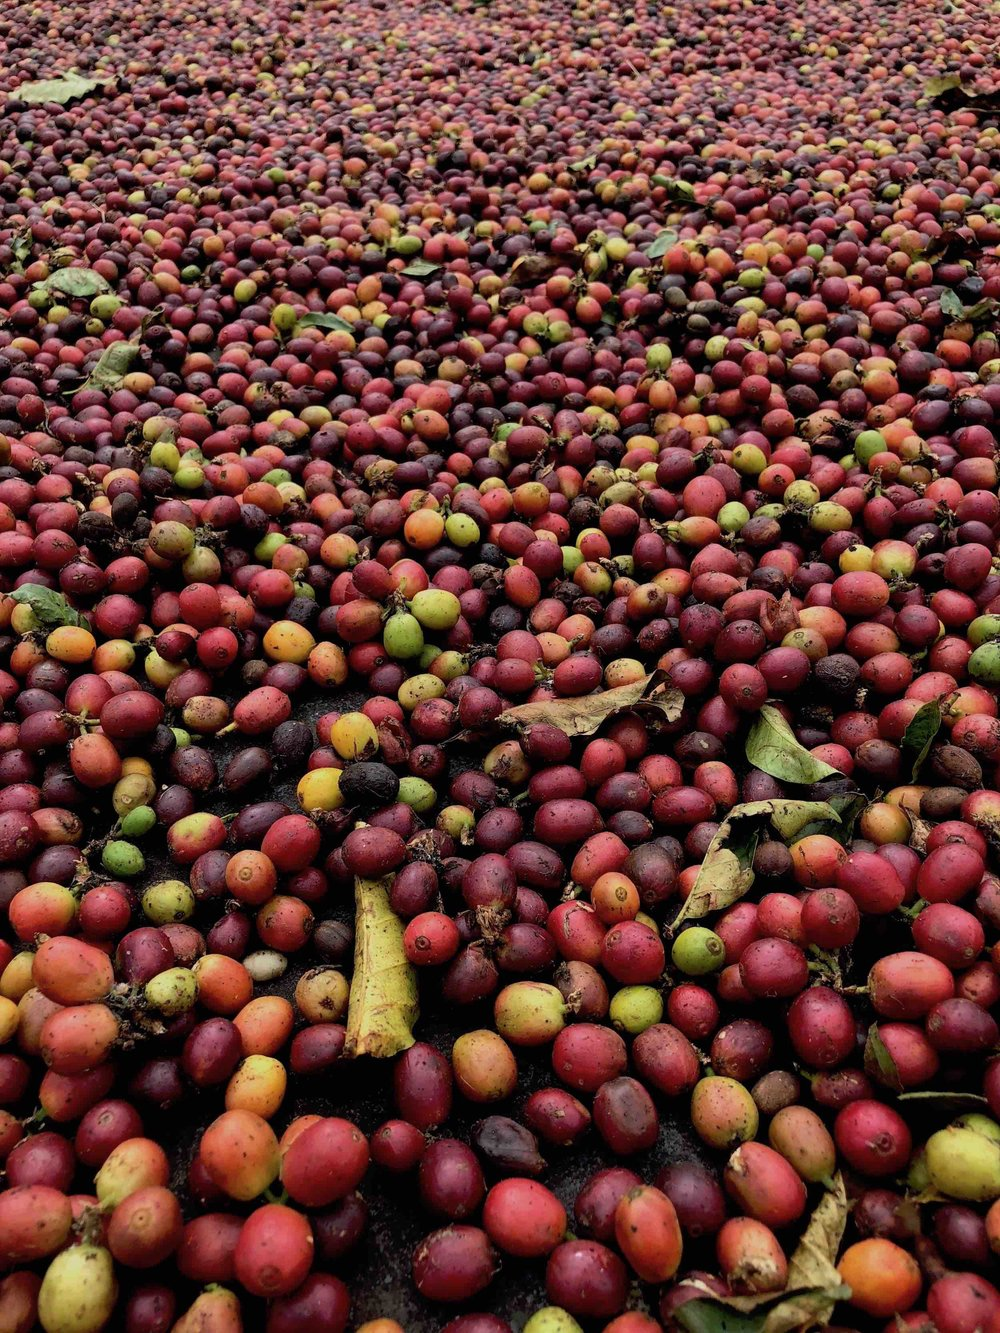 Freshly picked coffee berries from Kona coffee plantations.